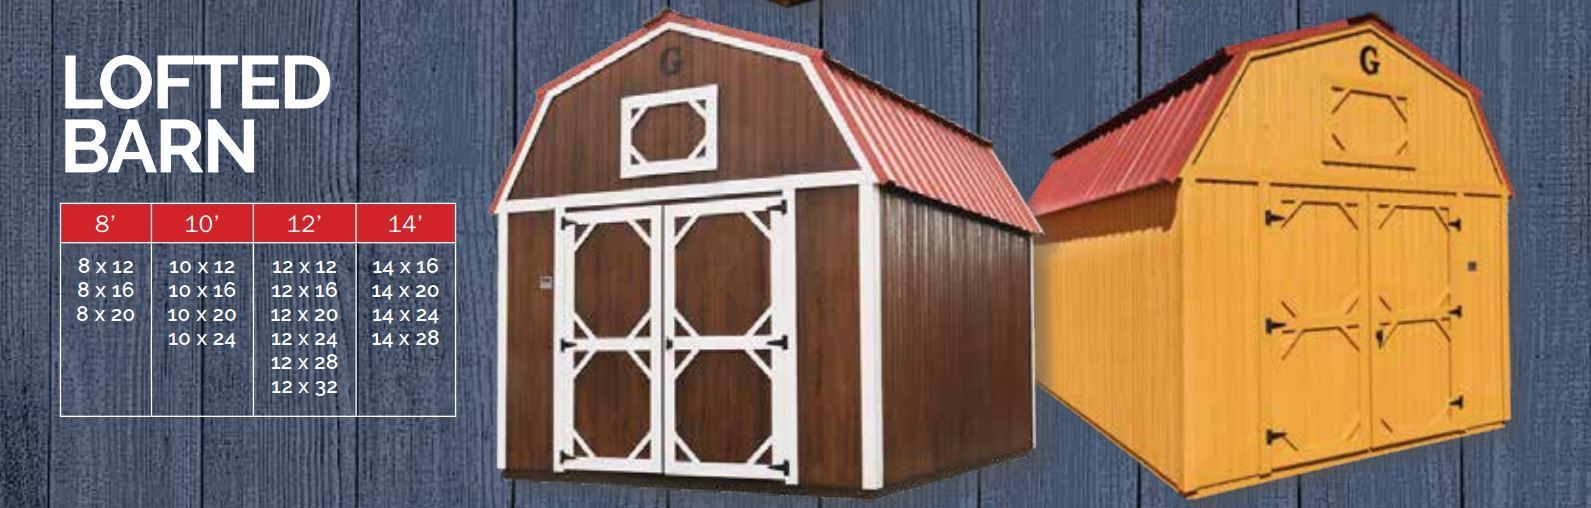 Best Selling Storage Sheds